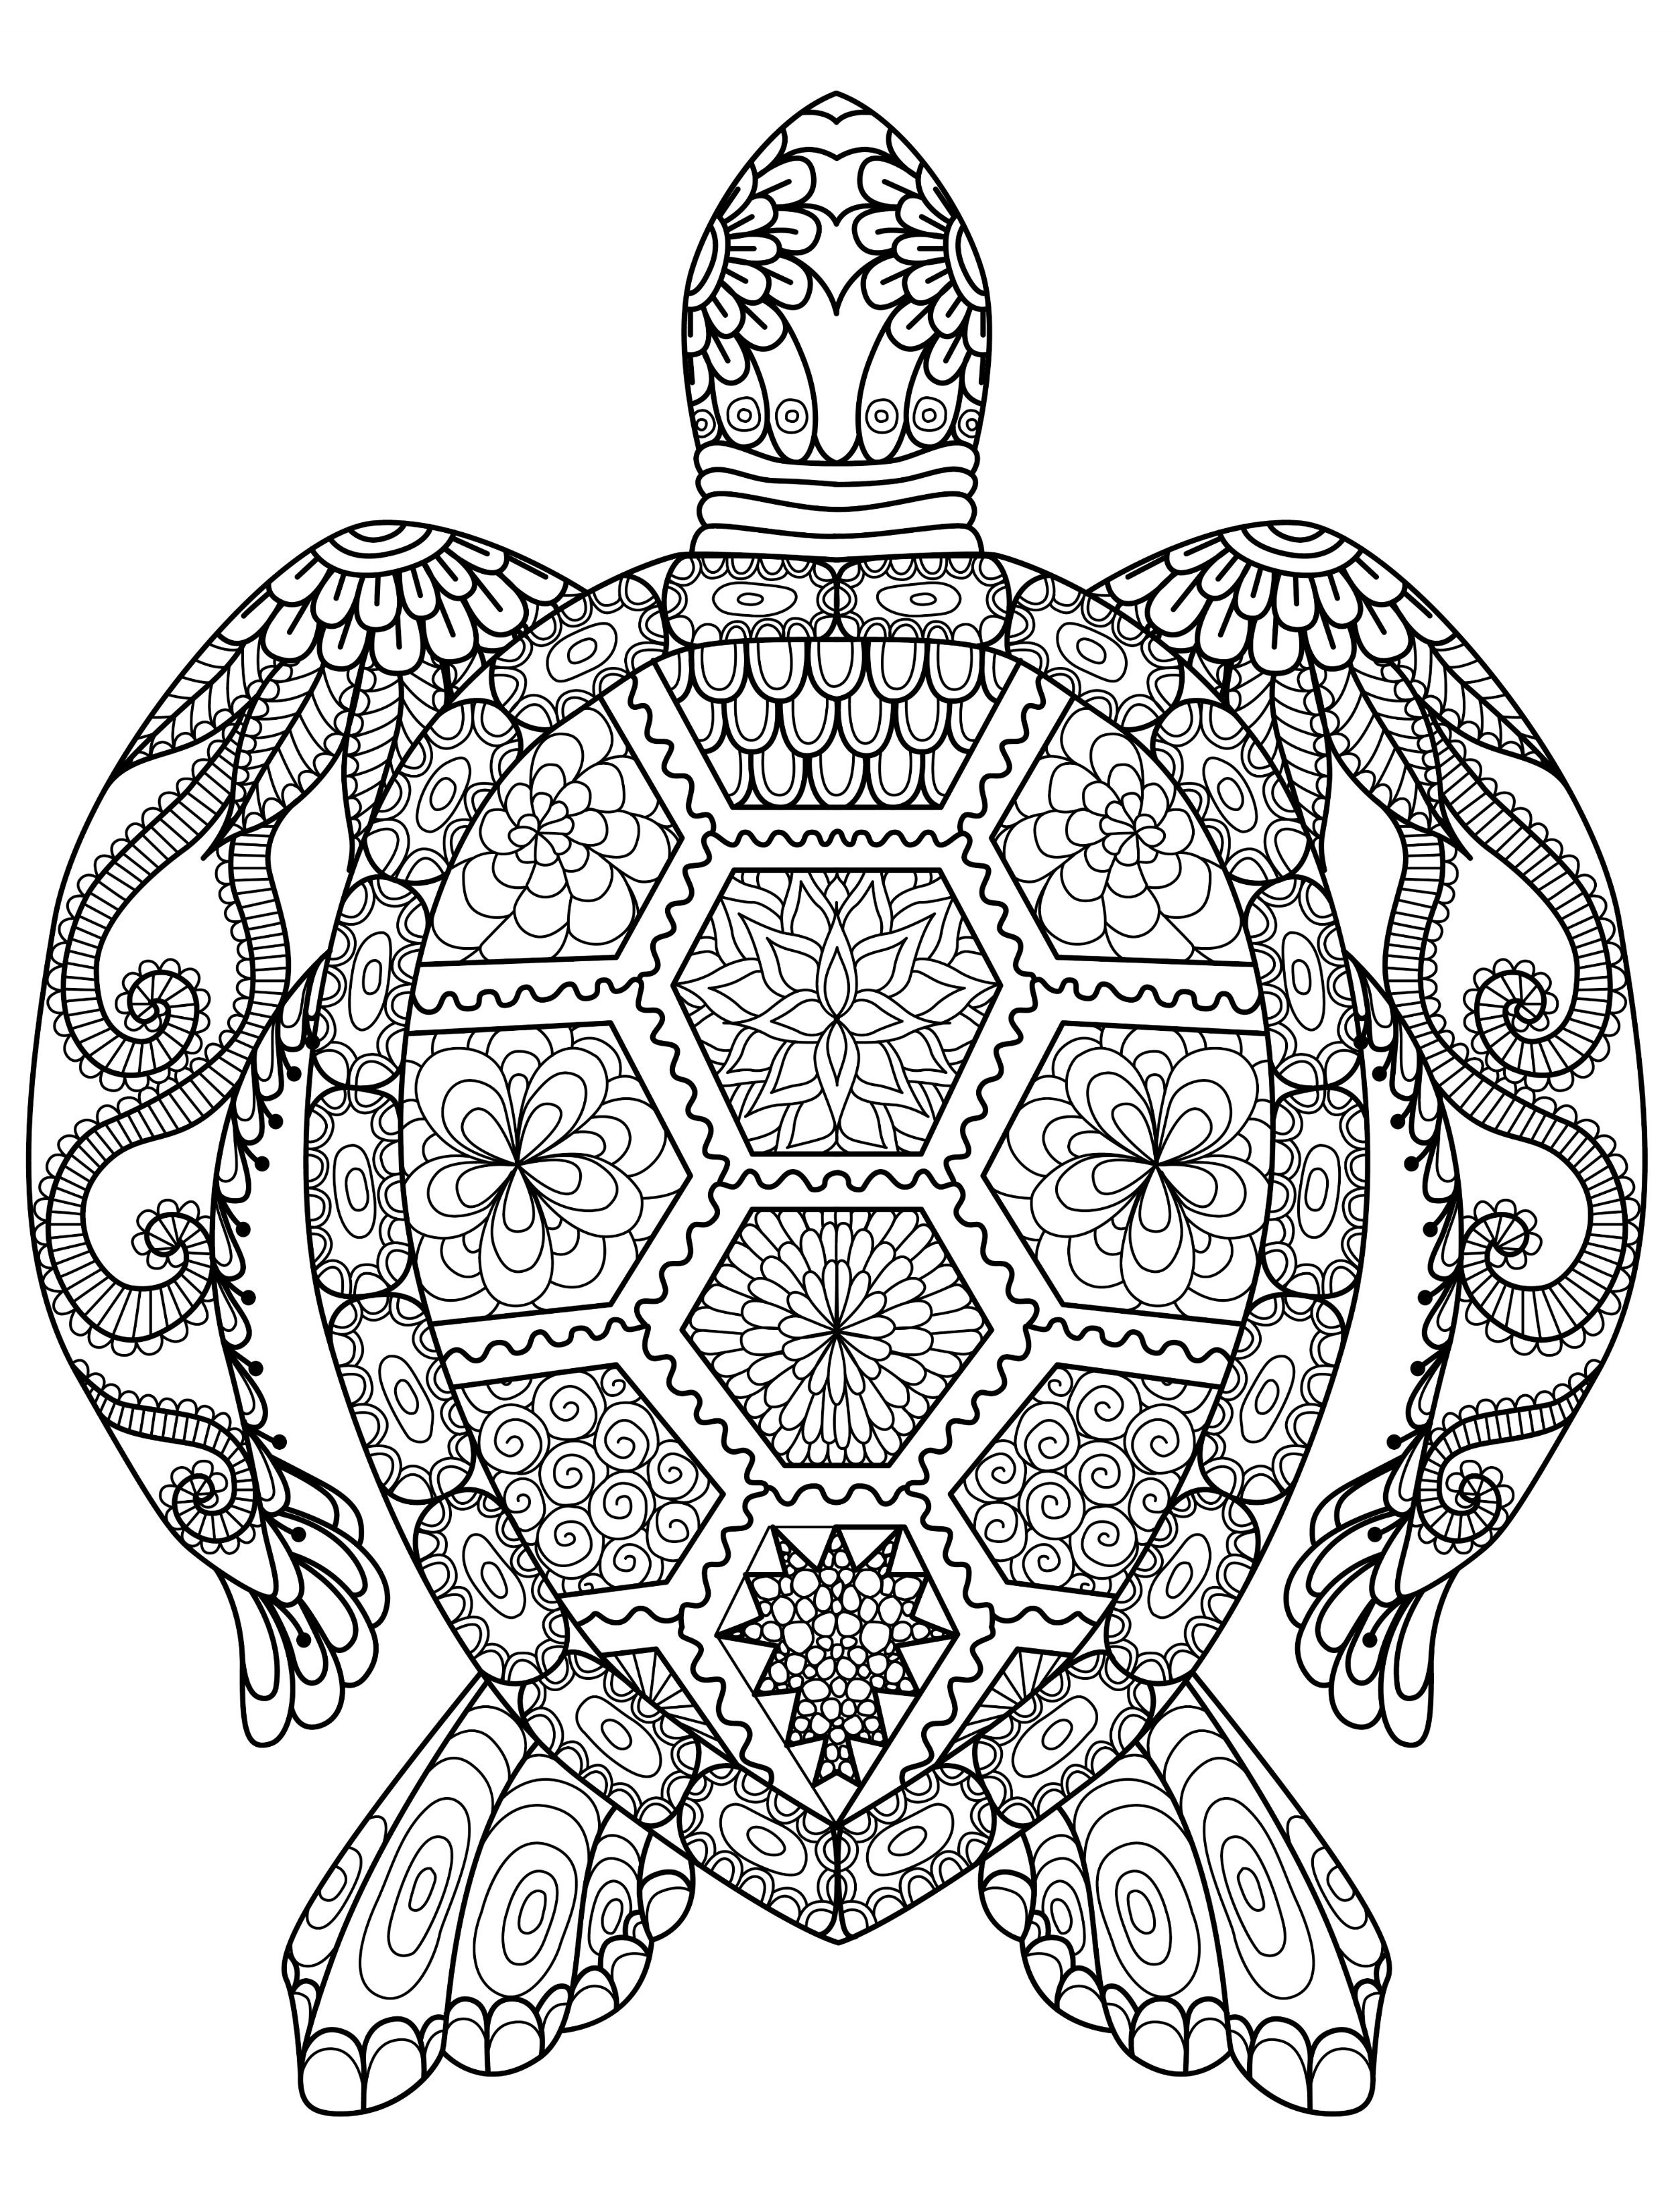 20 Gorgeous Free Printable Adult Coloring Pages | Coloring--Back To - Free Printable Coloring Books For Adults